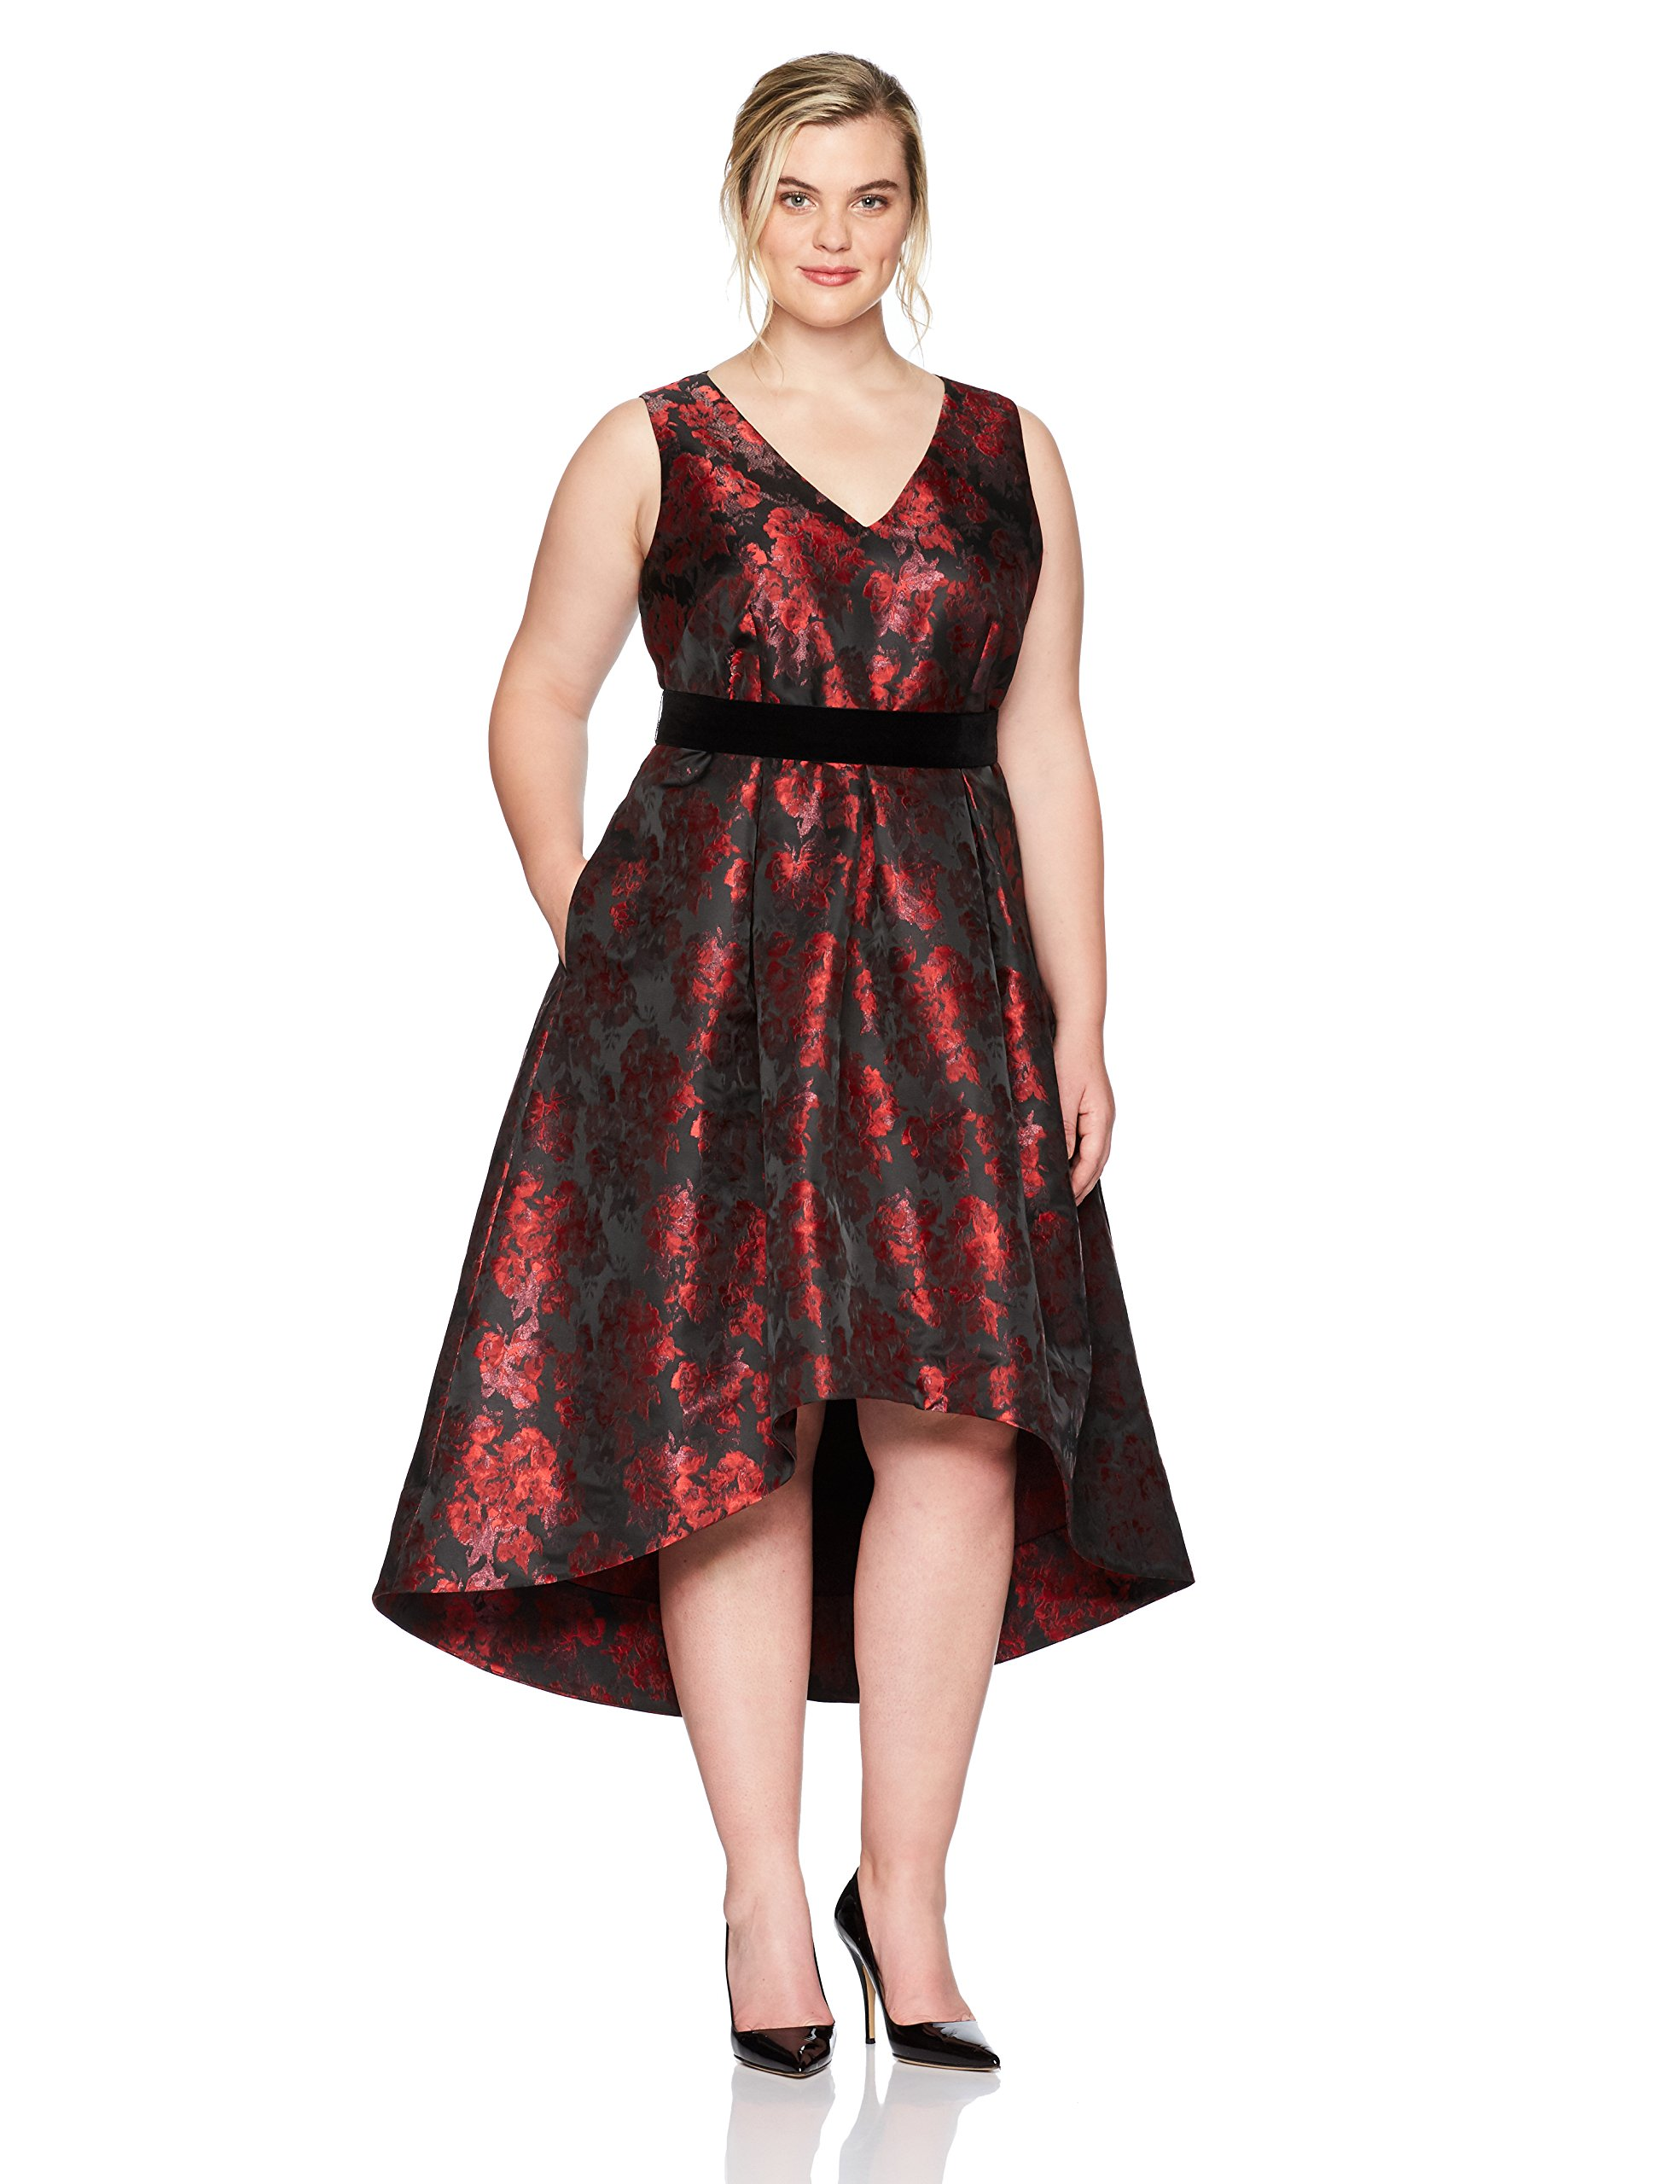 Eliza J Women's Plus Size Floral Fit and Flare Dress, Black/Red, 22W